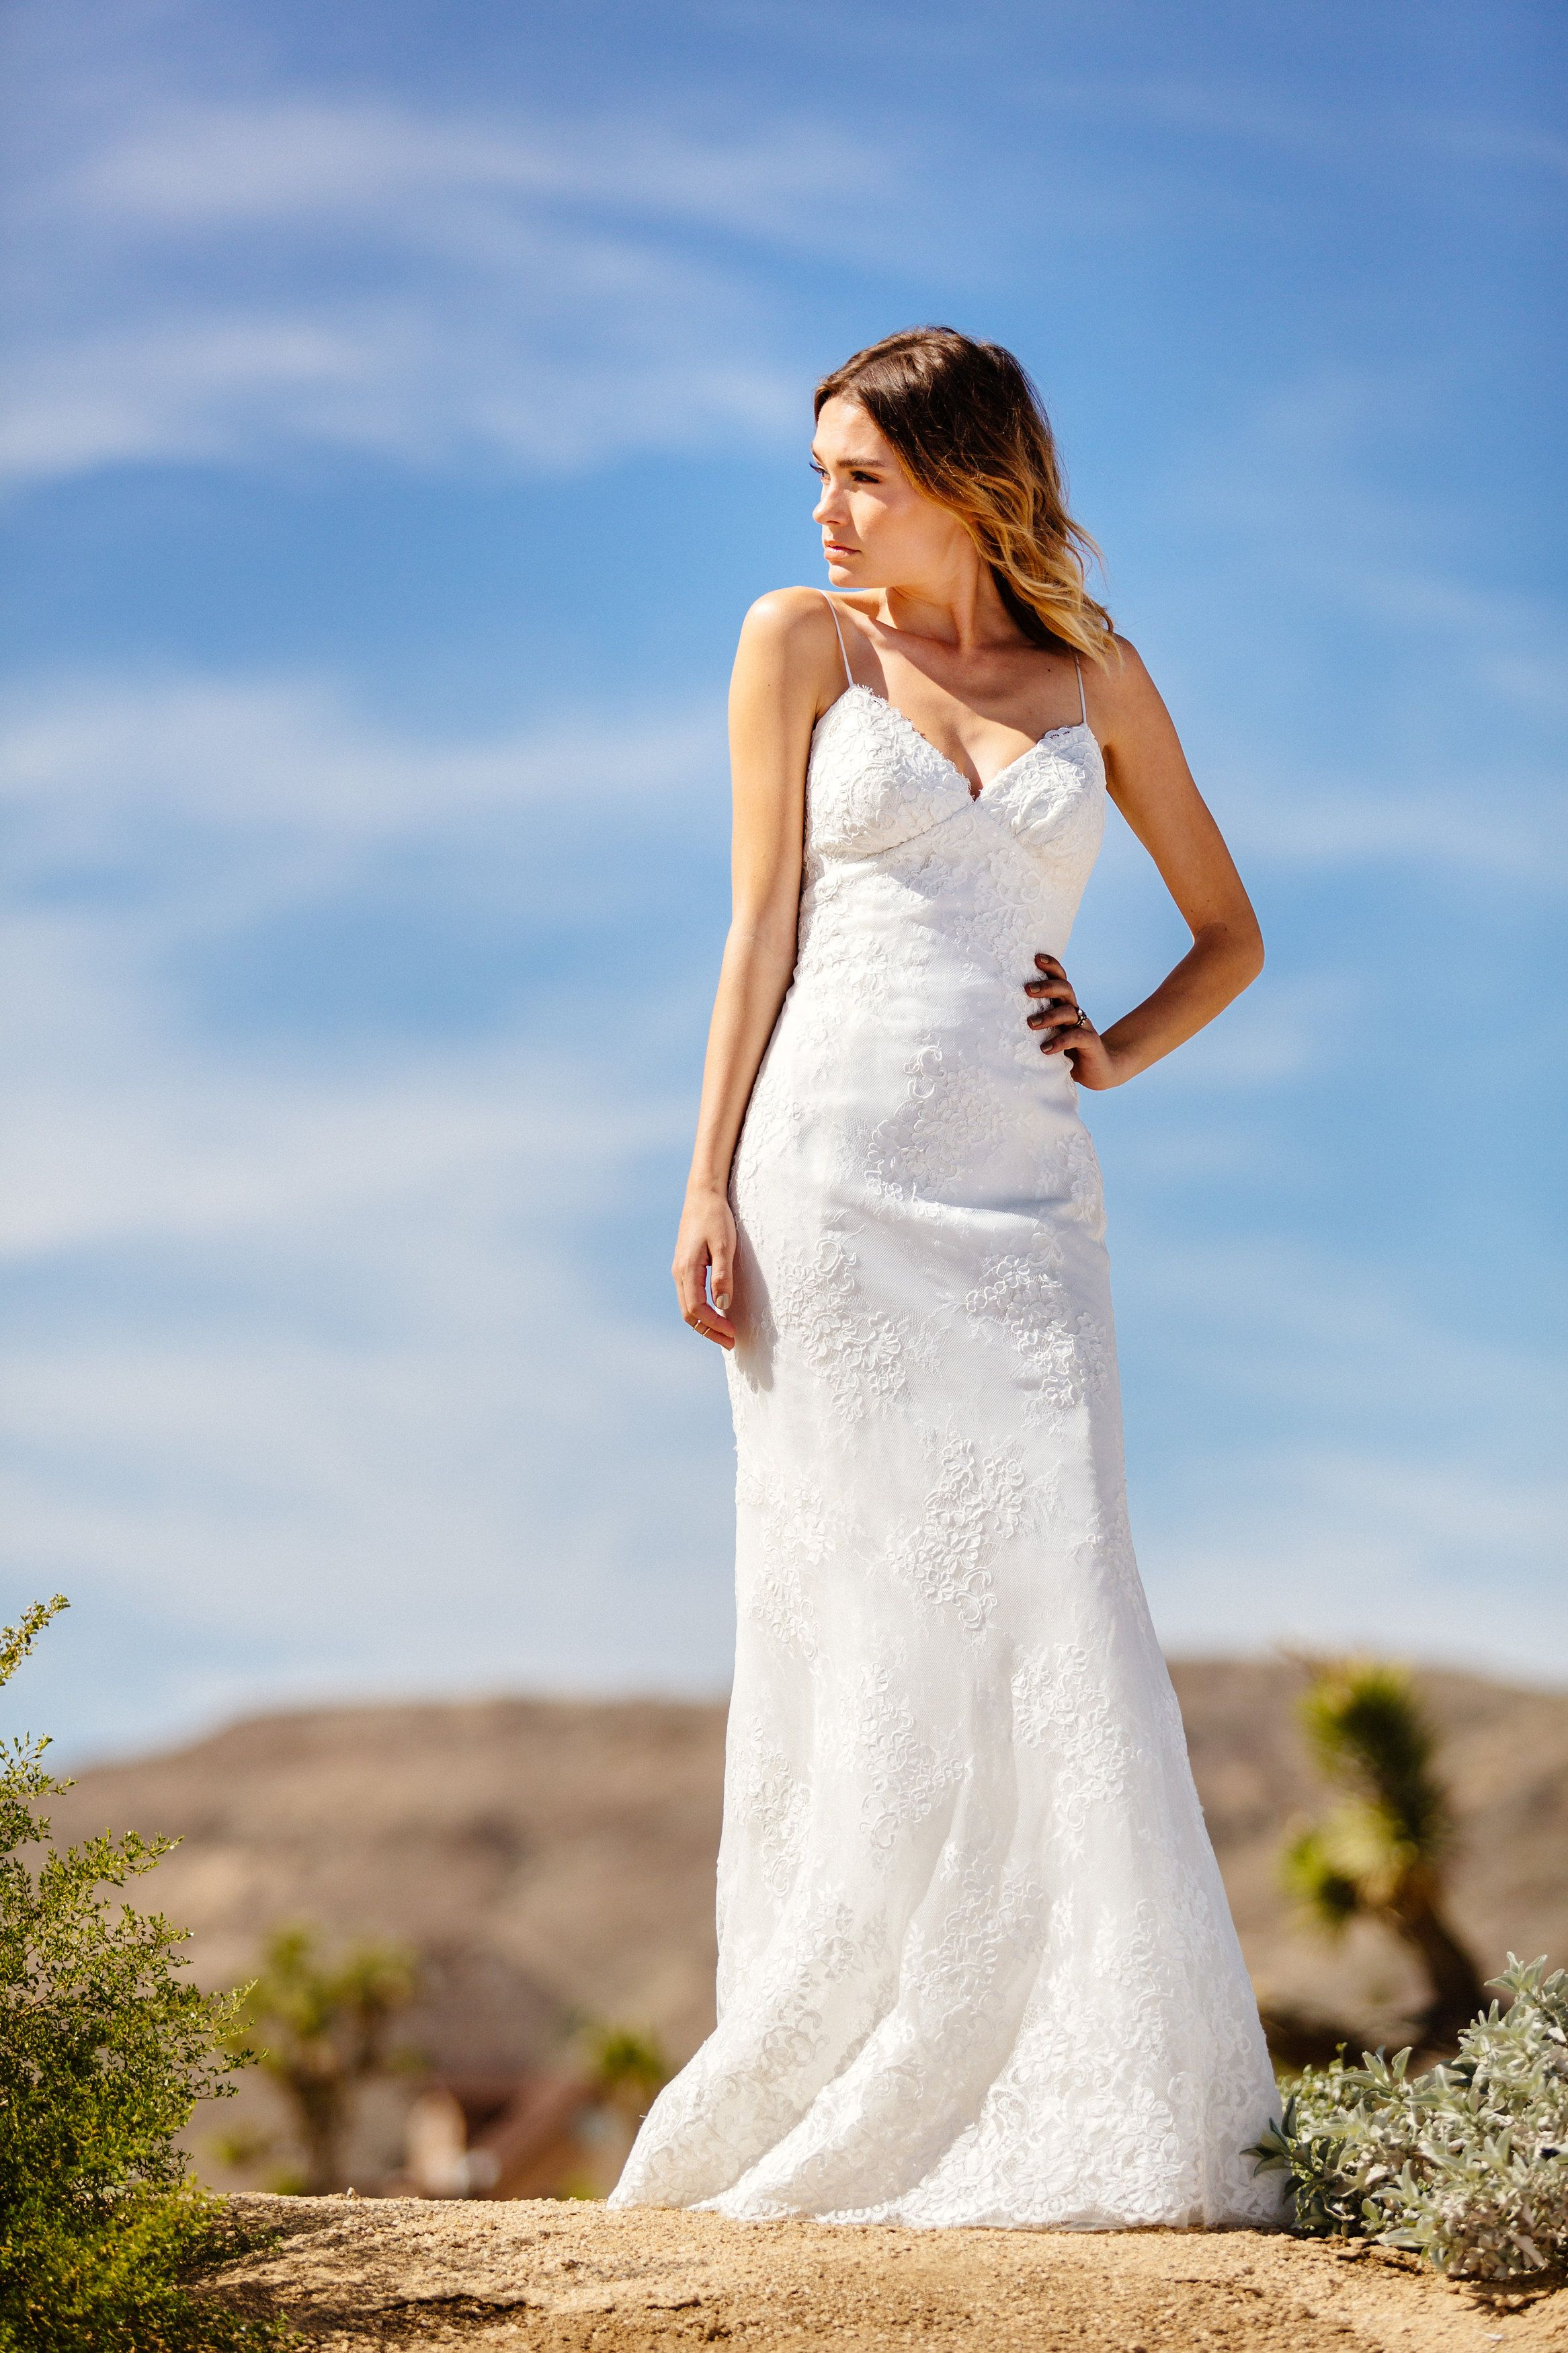 Astrid & Mercedes Riviera gown | desert | wedding inspiration ...